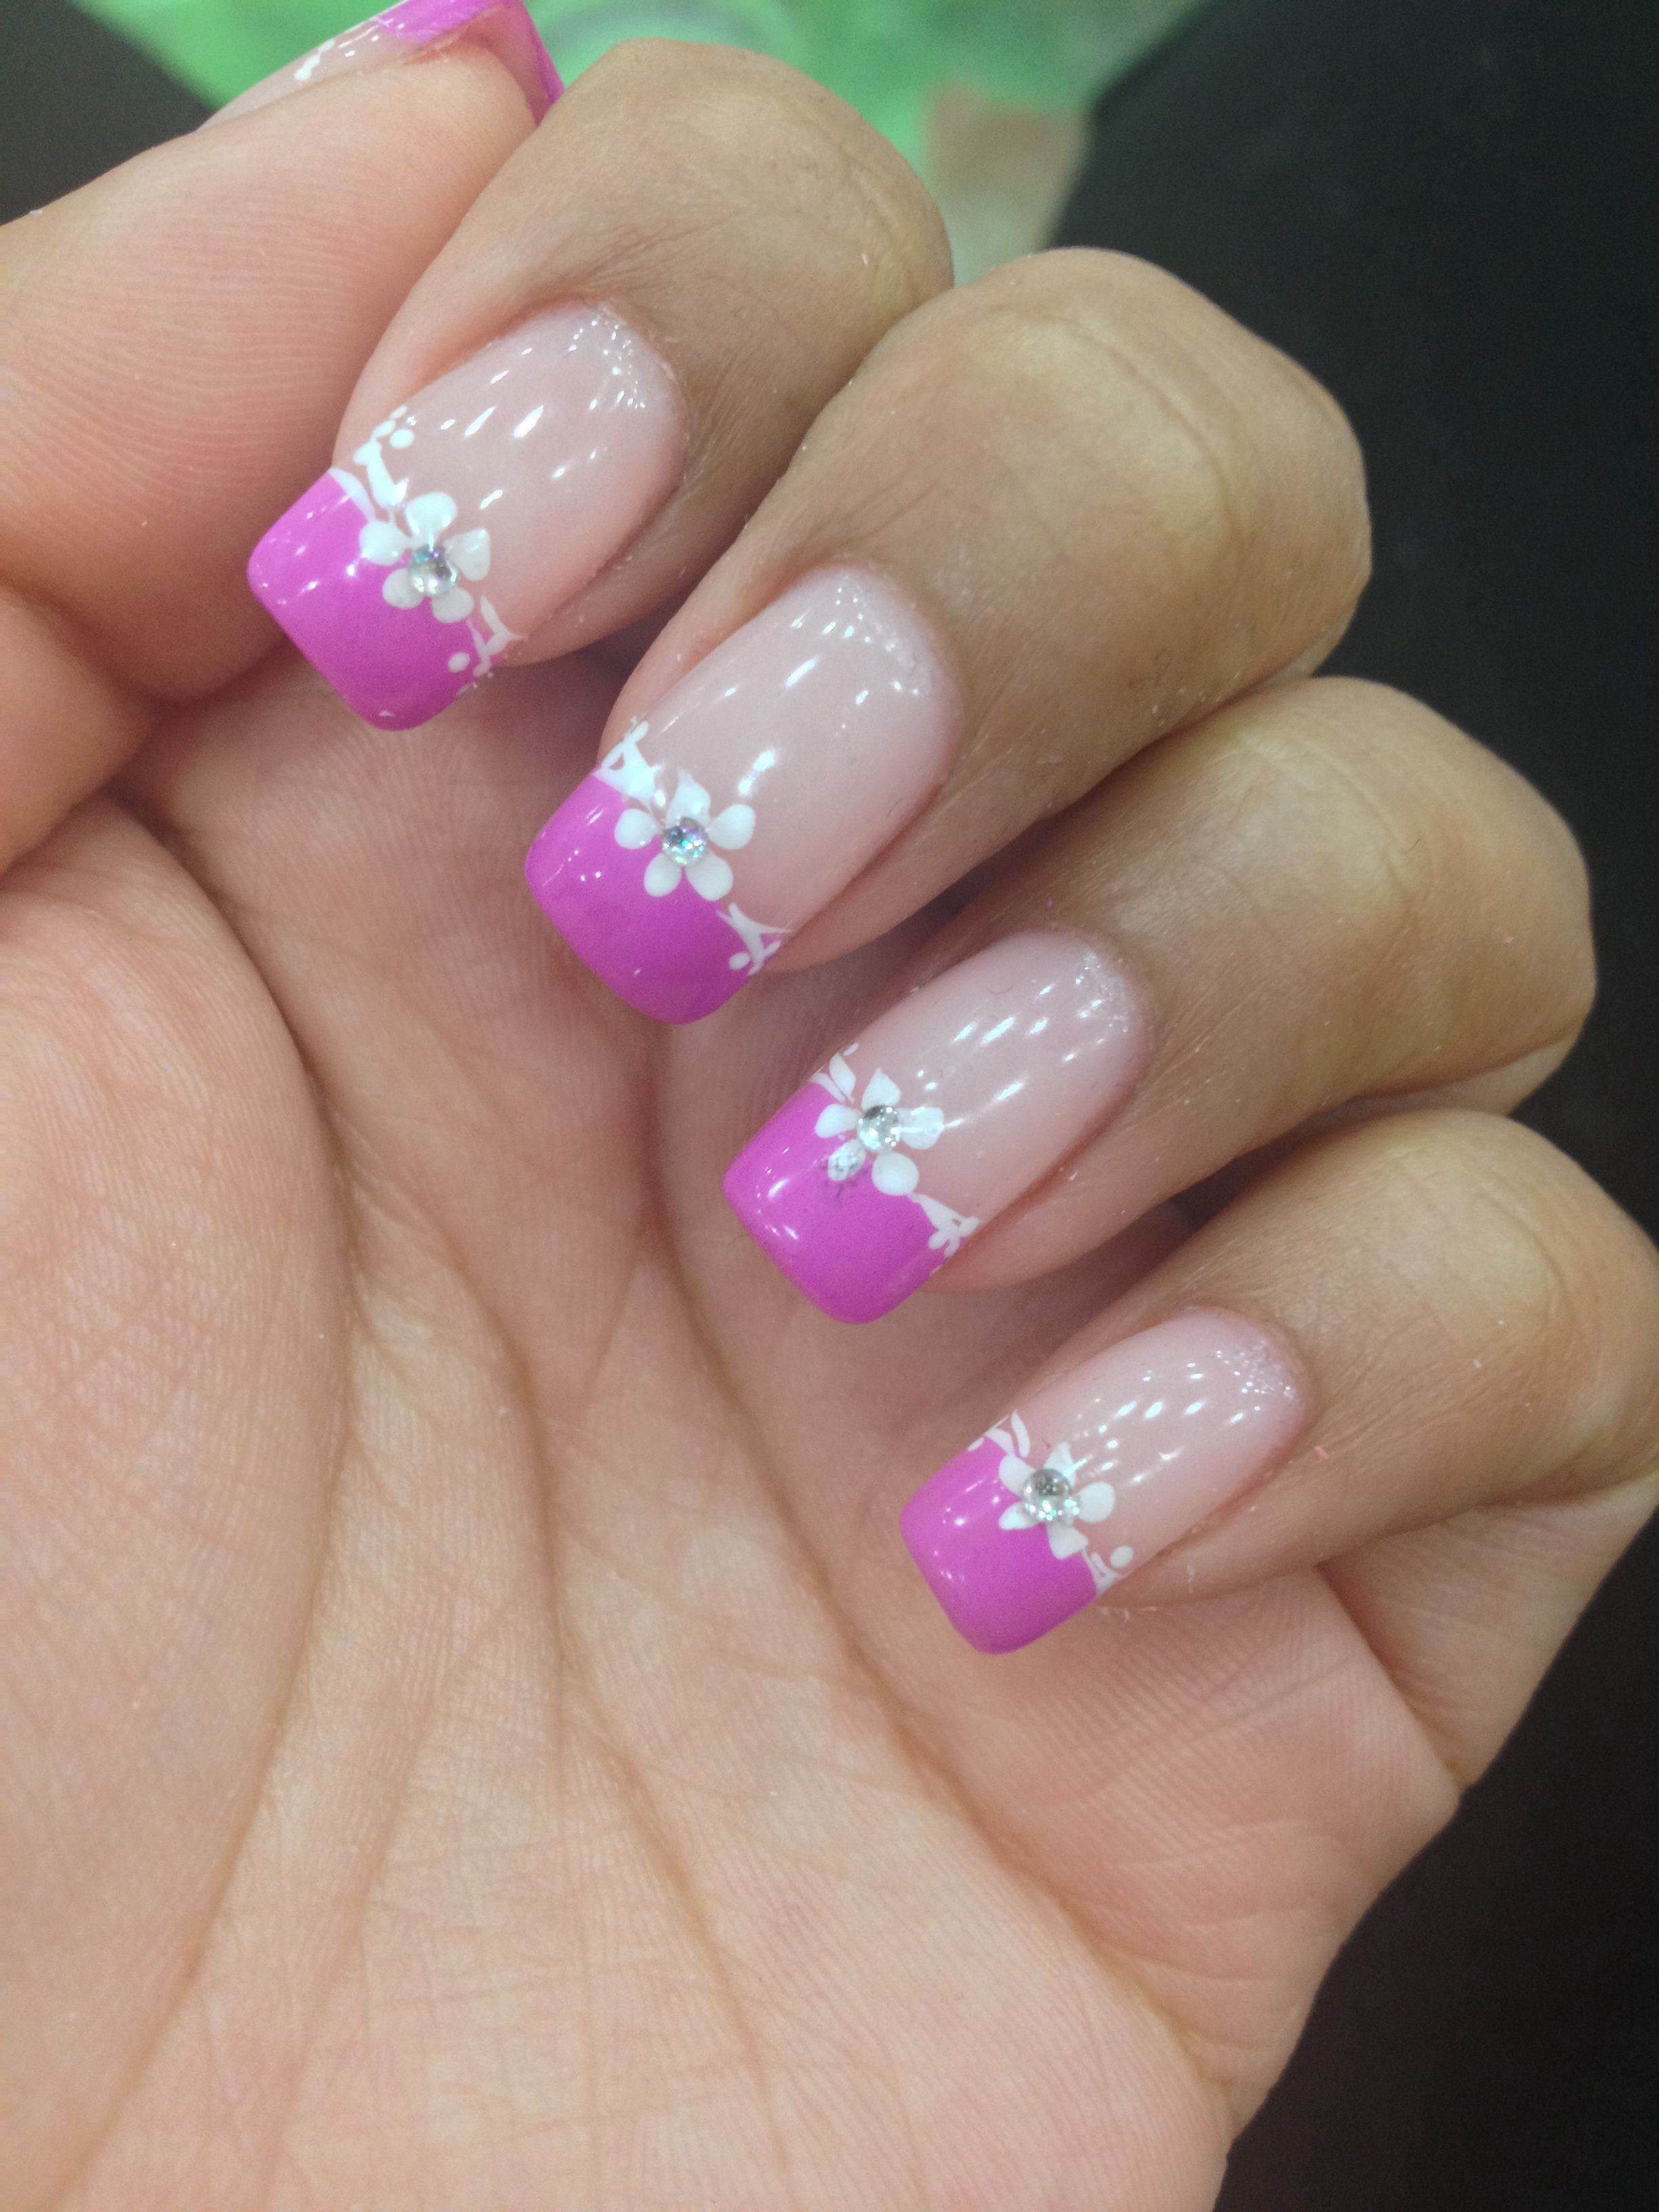 Pink French tip nails with design | nails | Pinterest